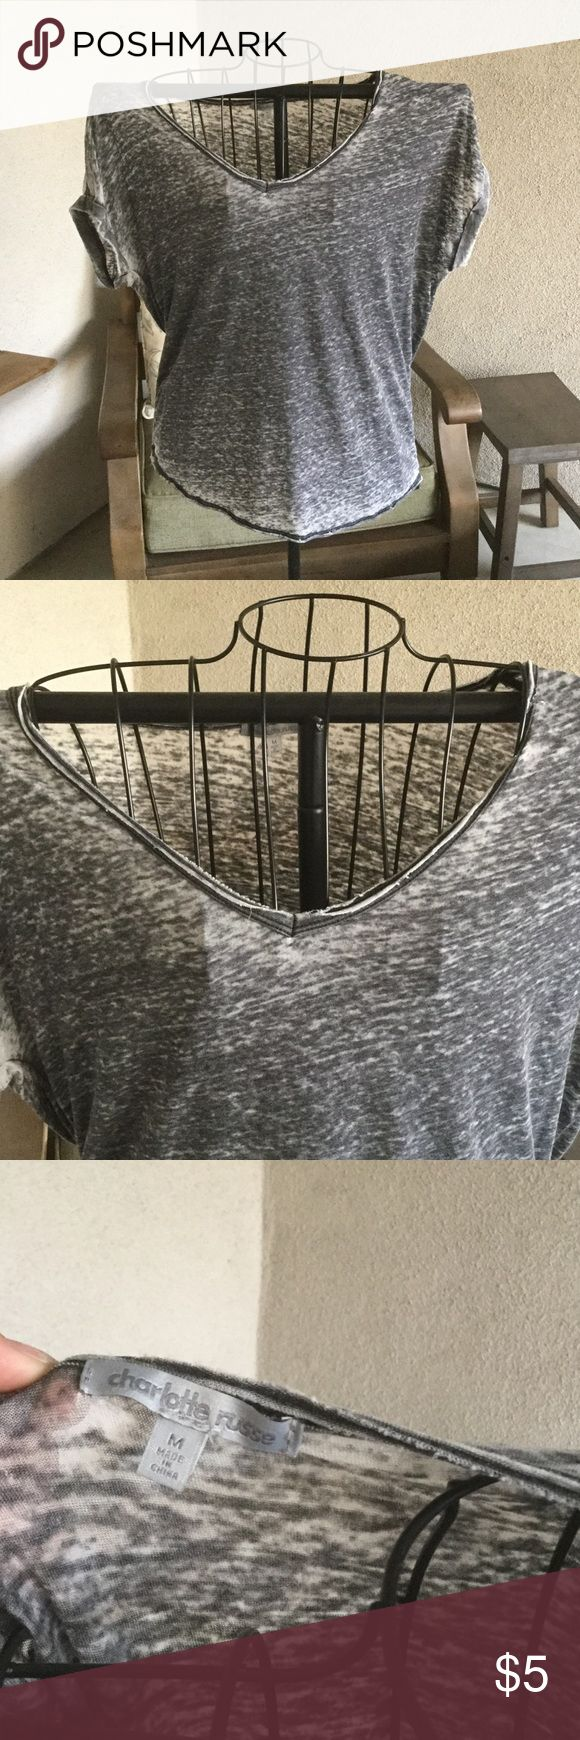 Charlotte rouse vneck staple t Grey acid wash distressed look with slightly cuffed sleeves cute with leggings tied up Charlotte Russe Tops Tees - Short Sleeve